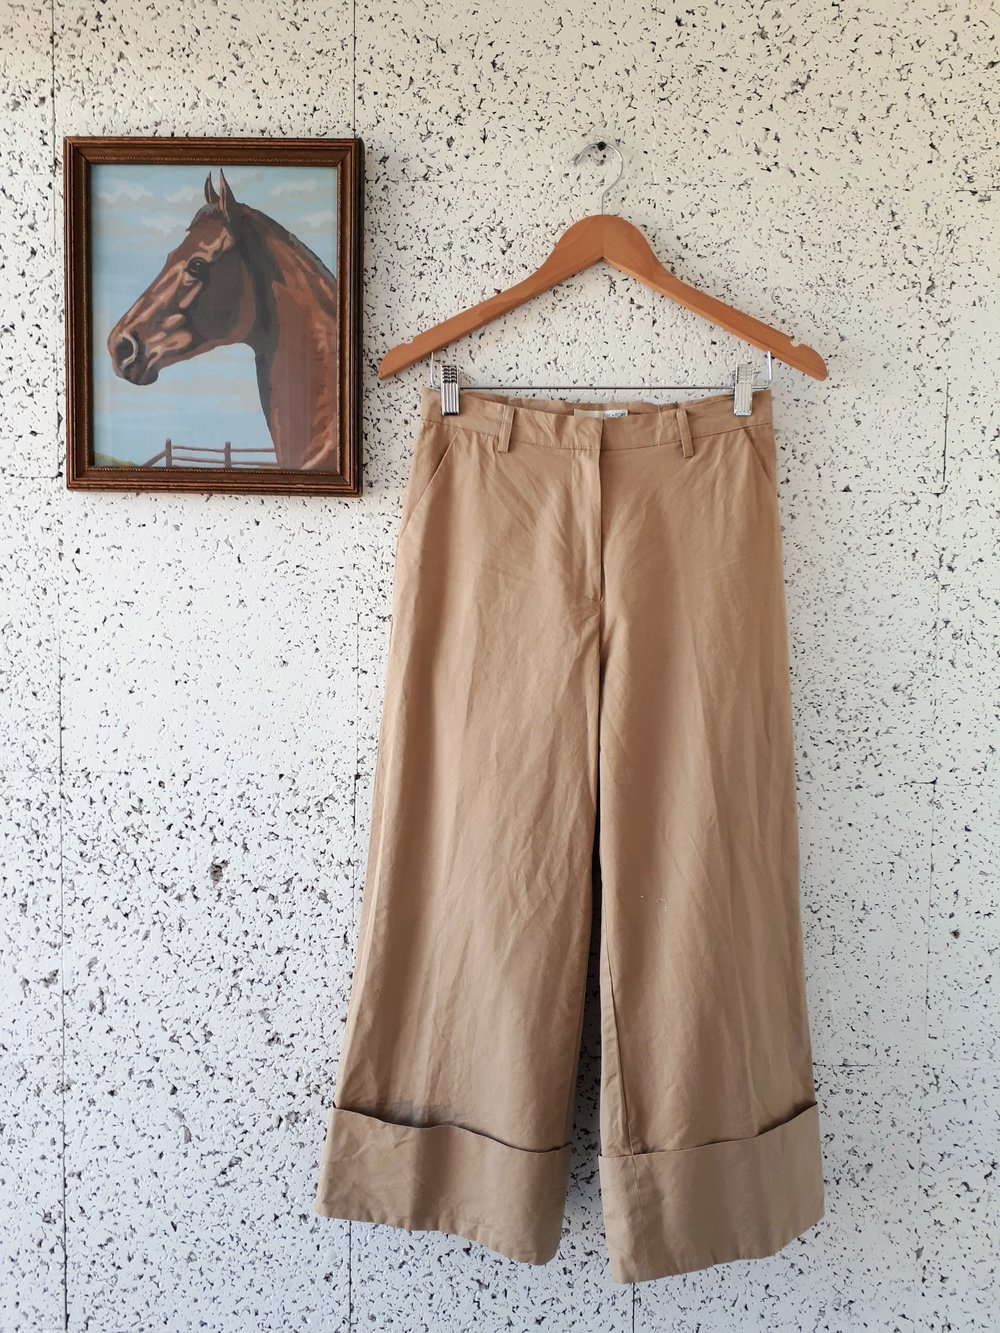 Oak+Fort pants; Size M, $40